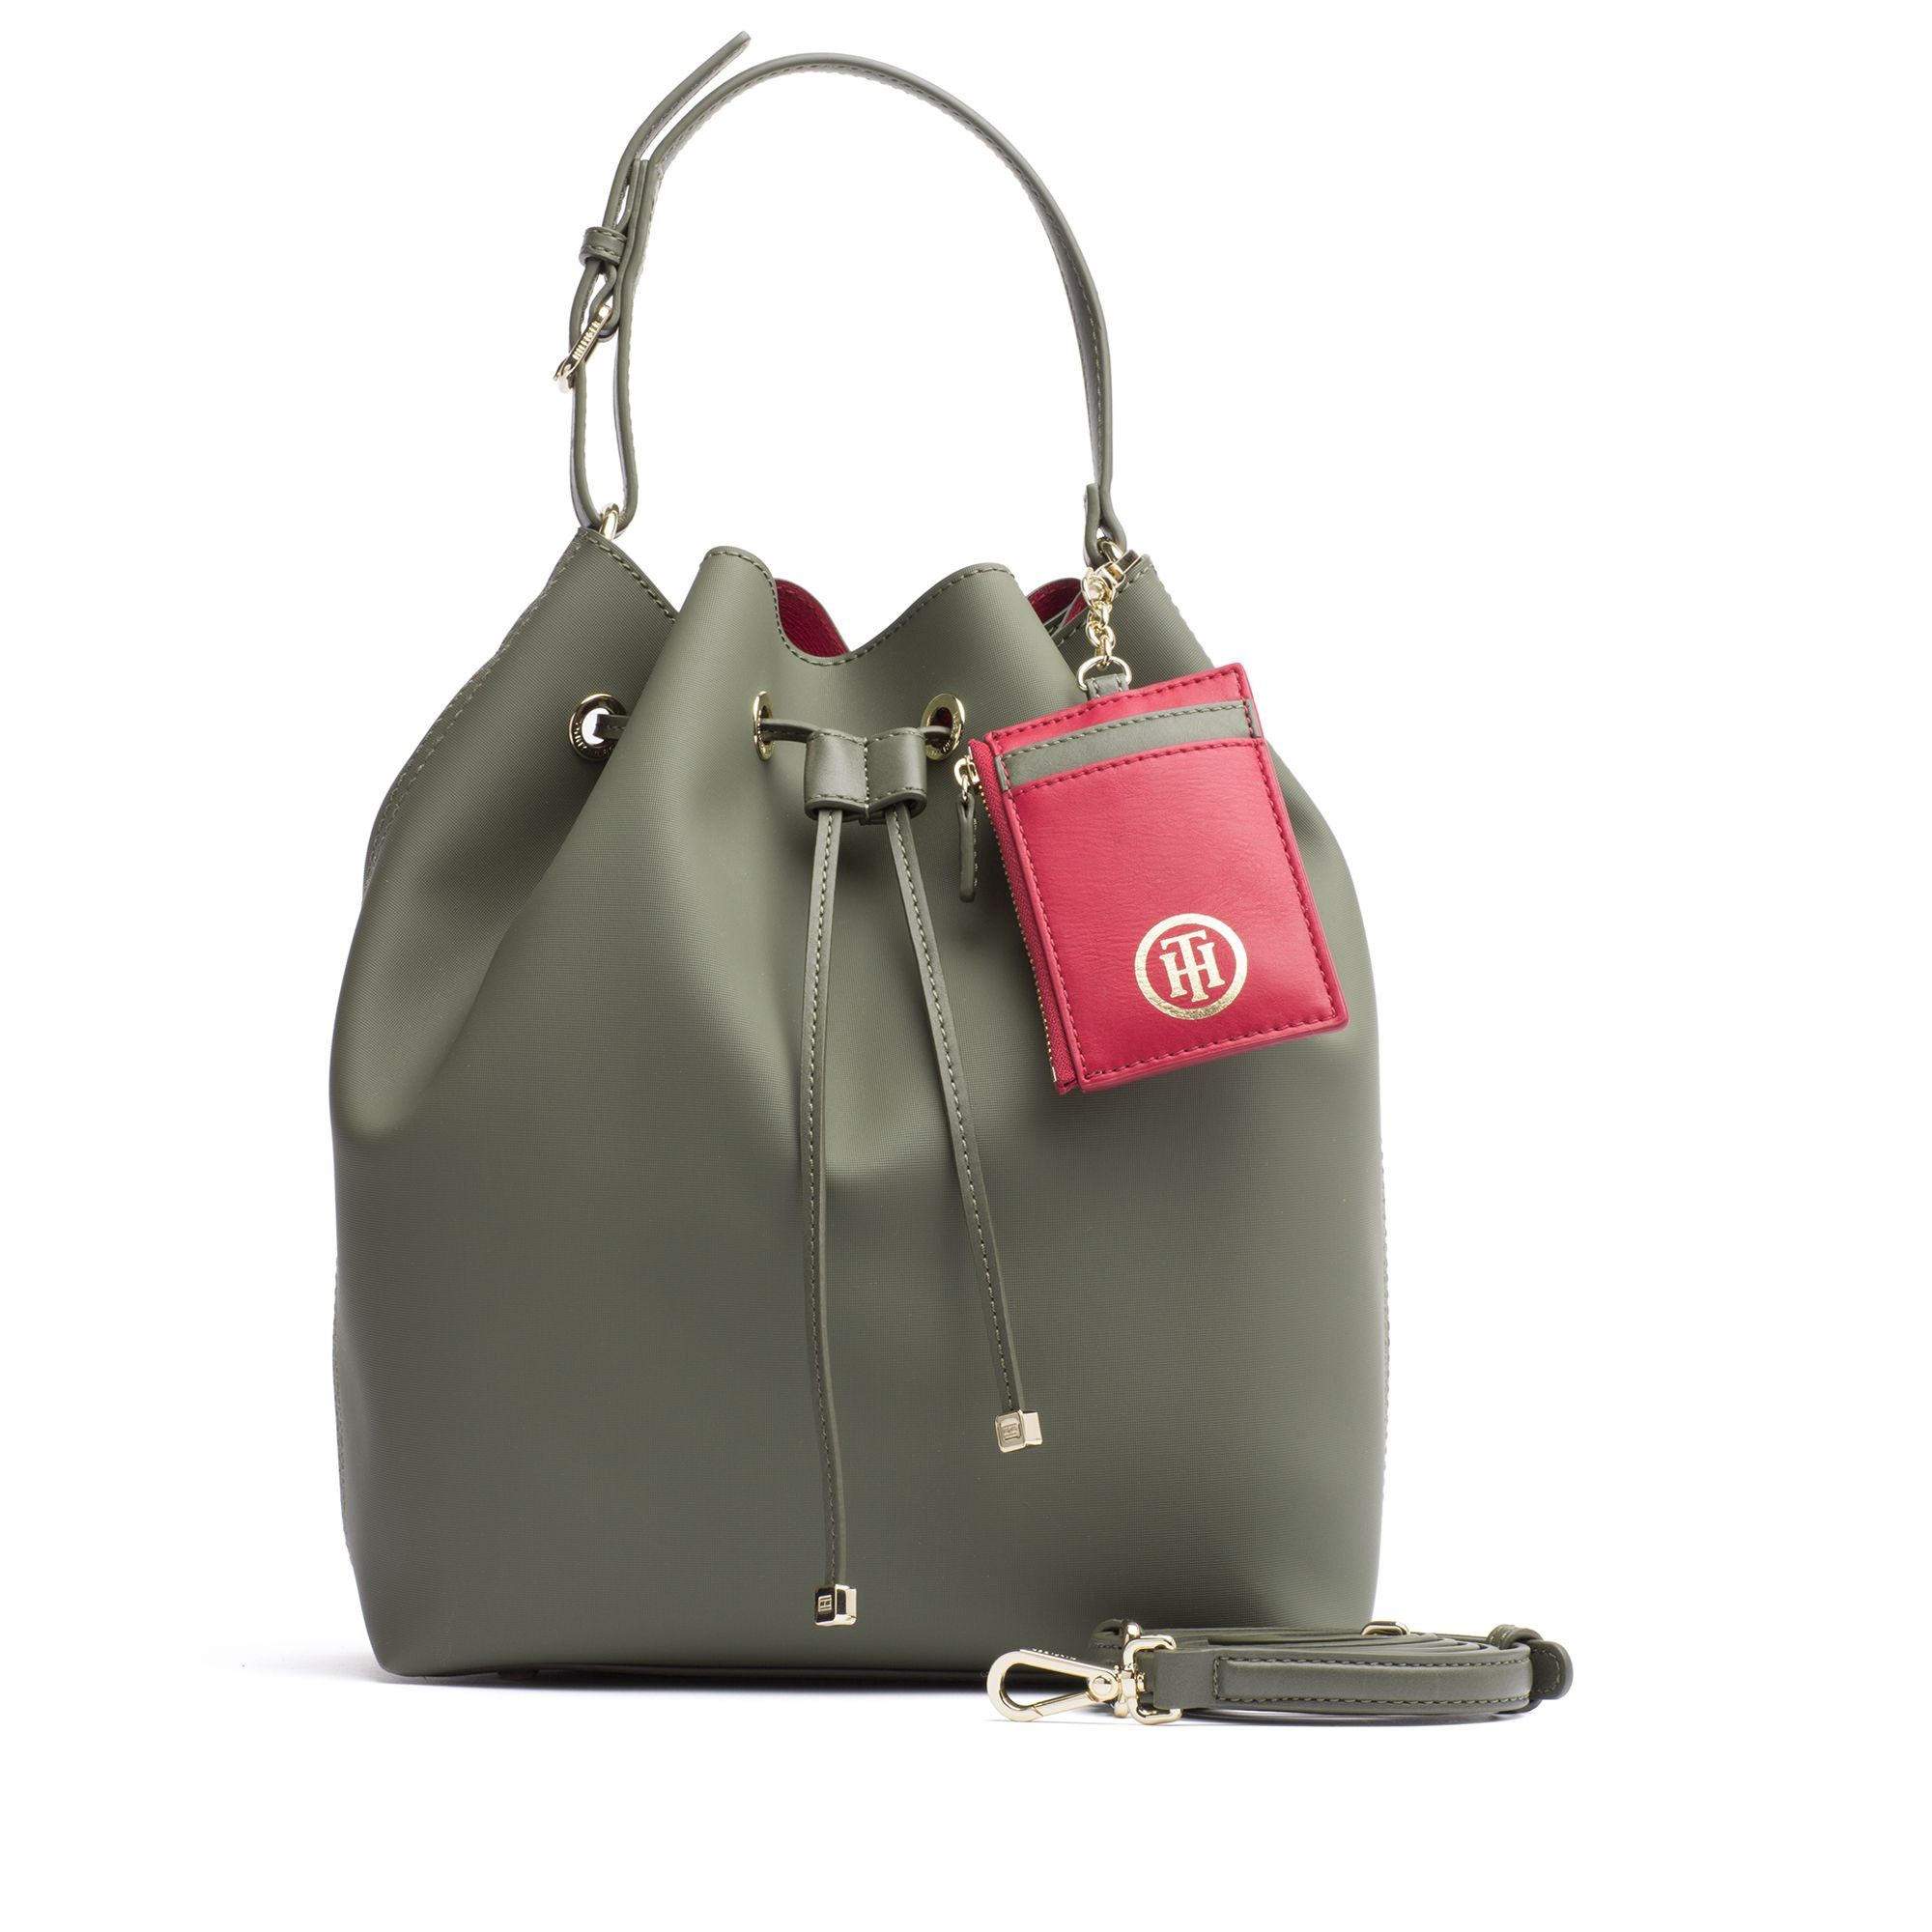 a21dfda1a Tommy Hilfiger Signature Mini Bucket Bag - Military / Scooter Red Os ...